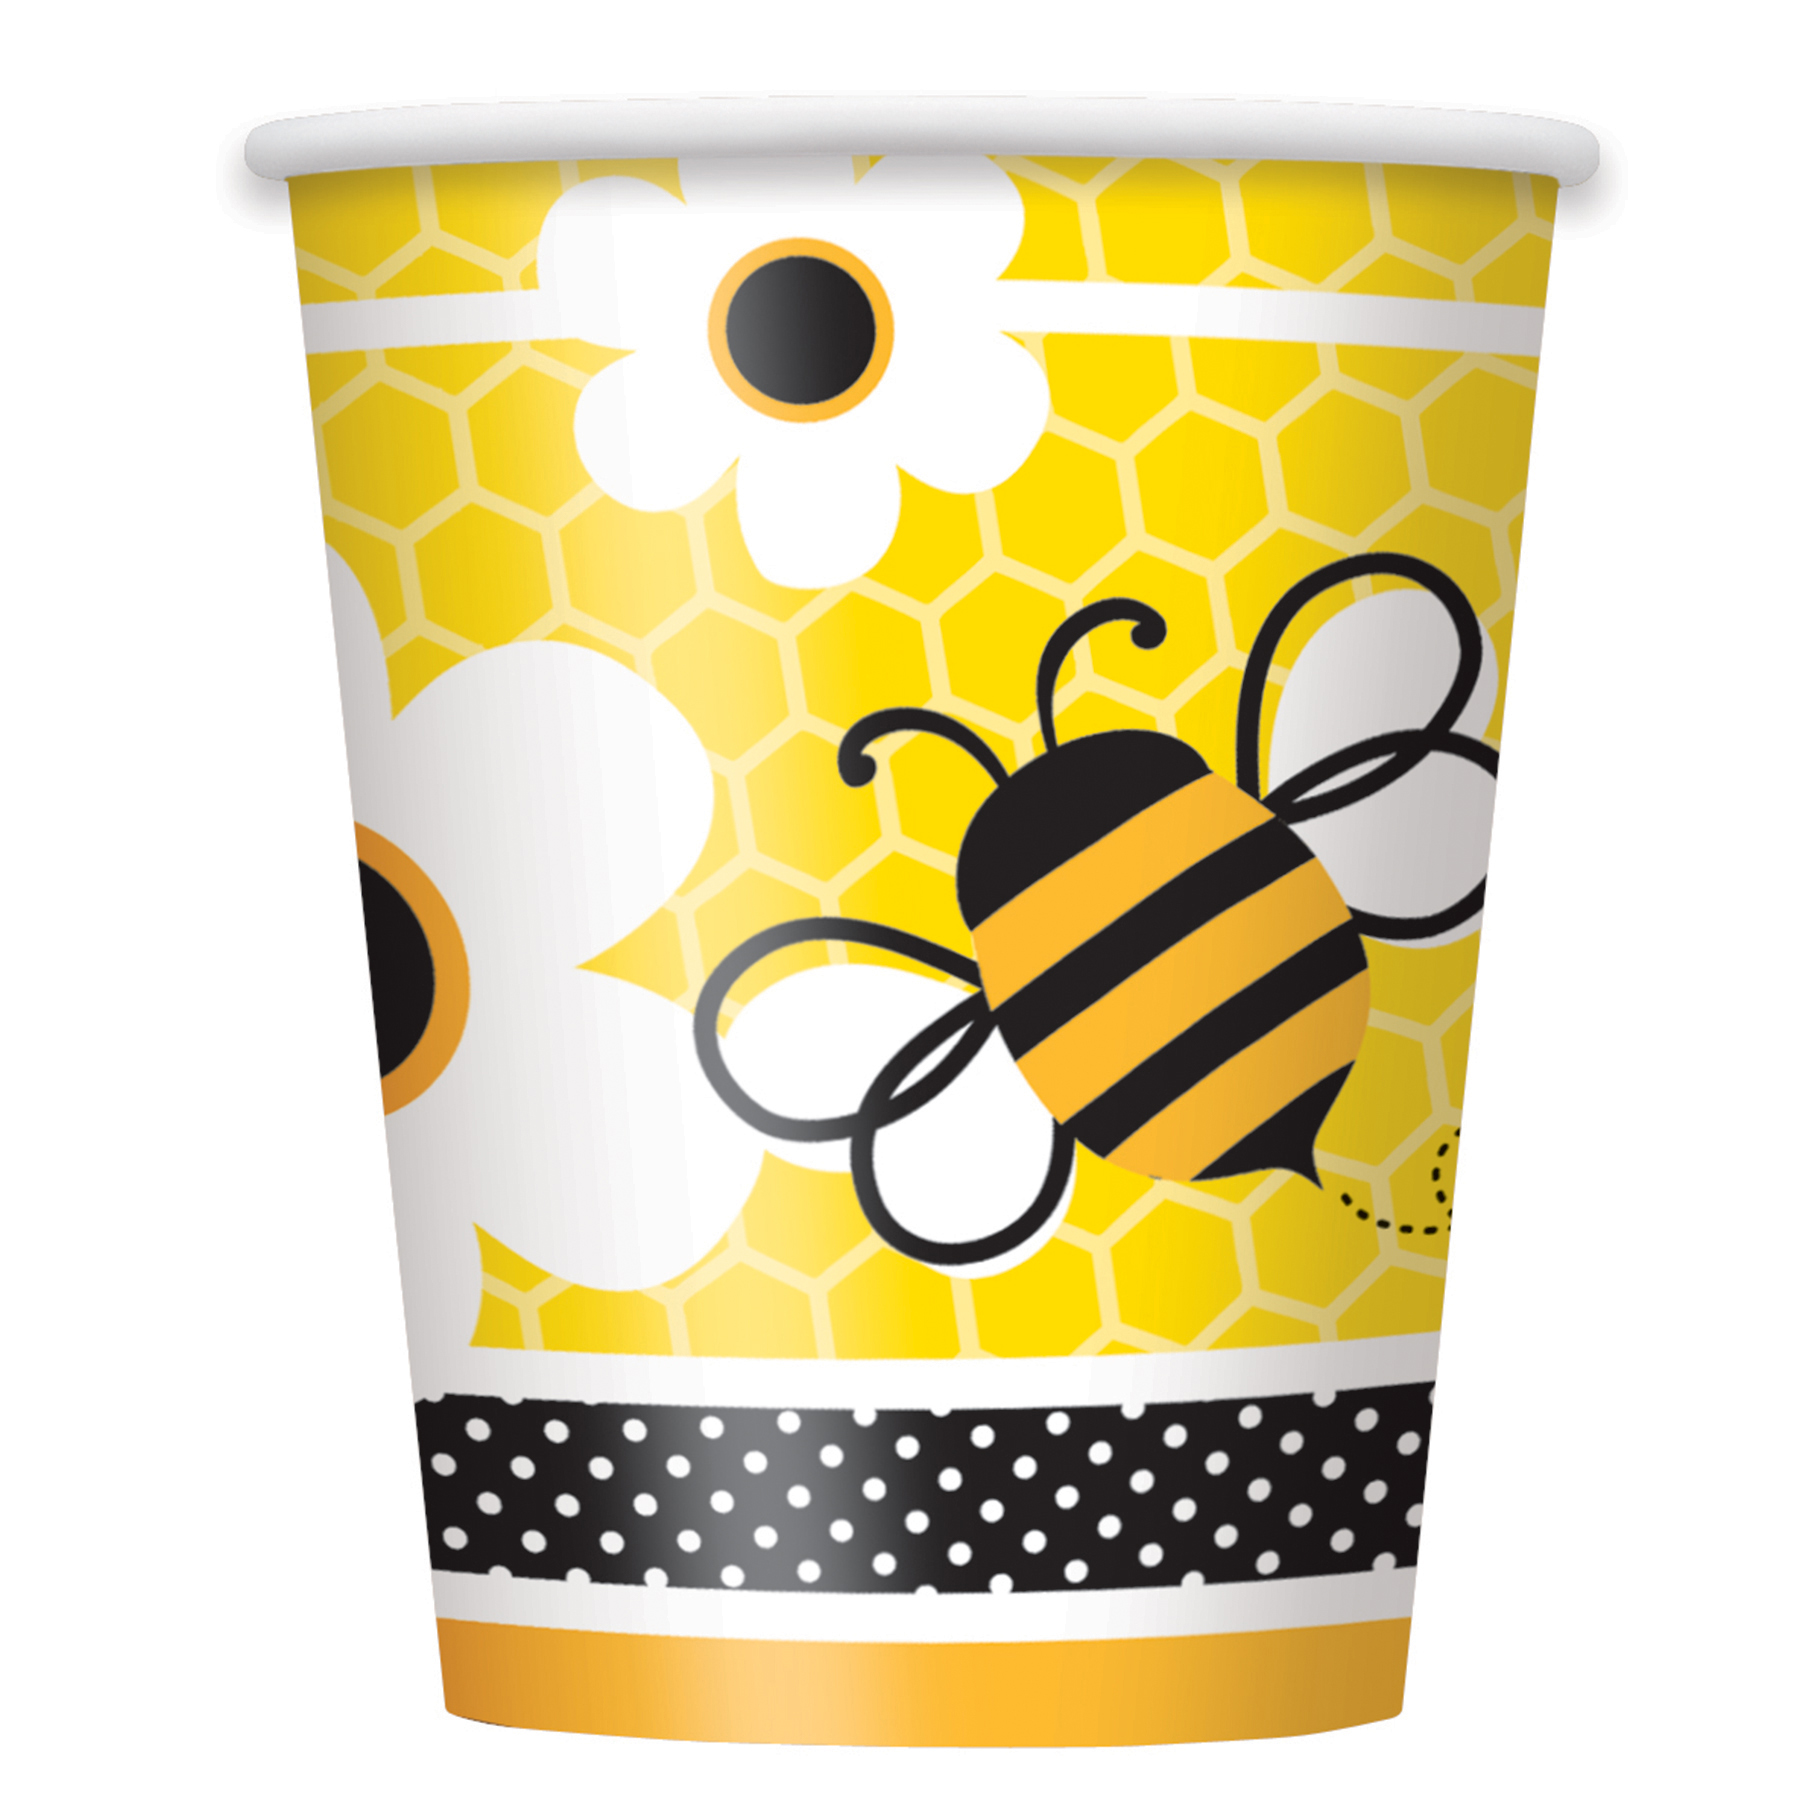 9oz Bumble Bee Paper Cups 8ct  sc 1 st  Michaels Stores & 9oz Bumble Bee Paper Cups | Bumble Bee Themed Party Supplies